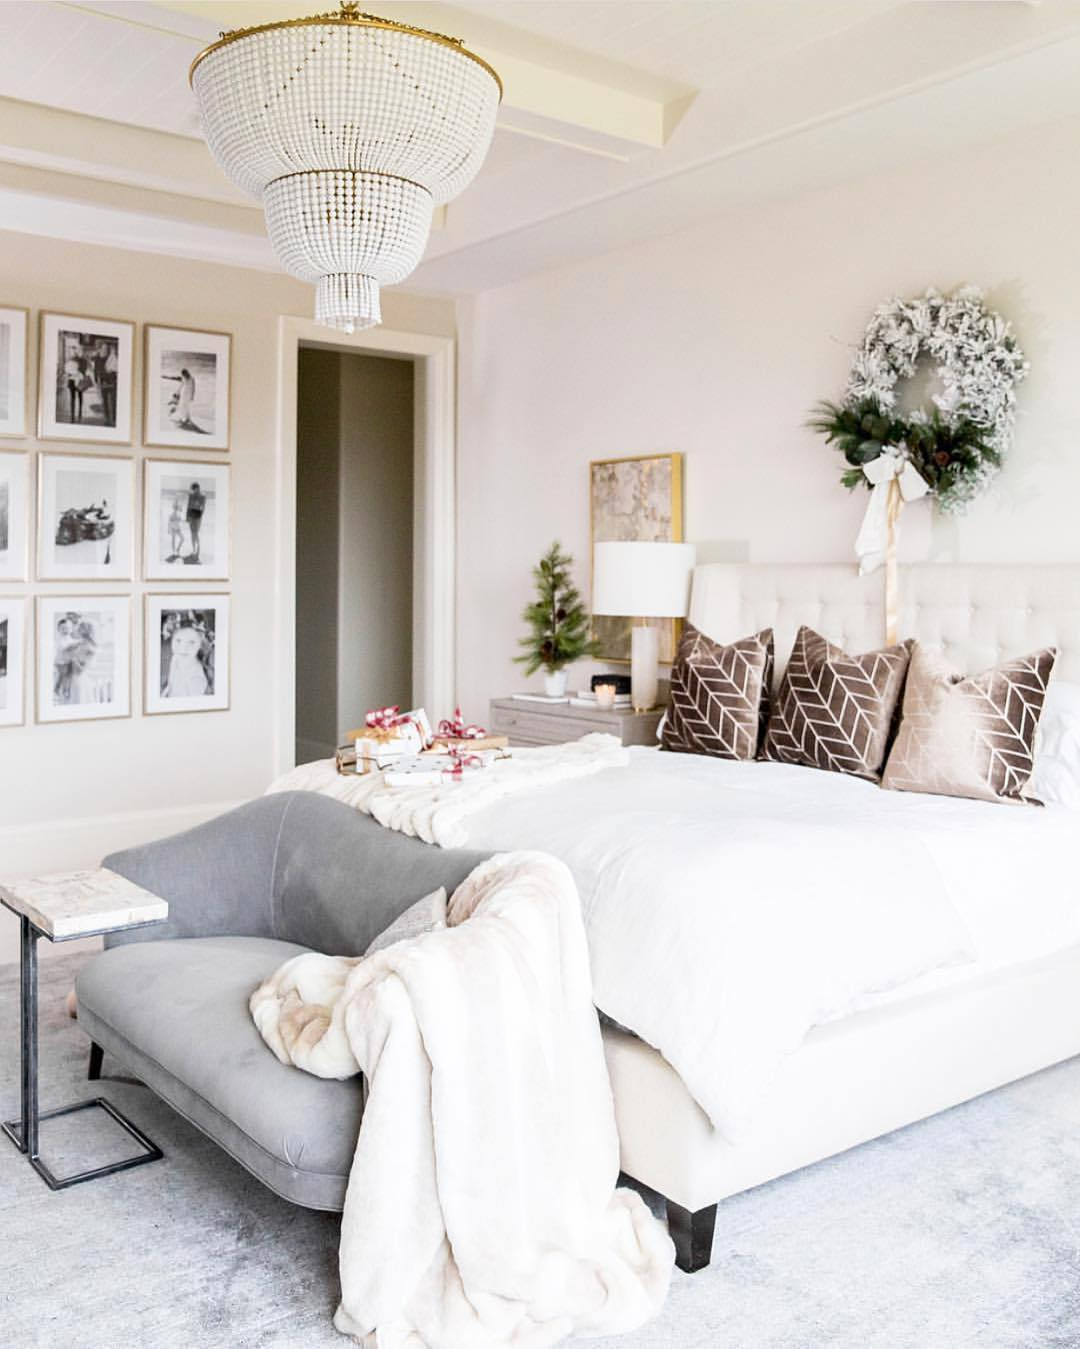 Love this simple but festive bedroom by emilyijackson